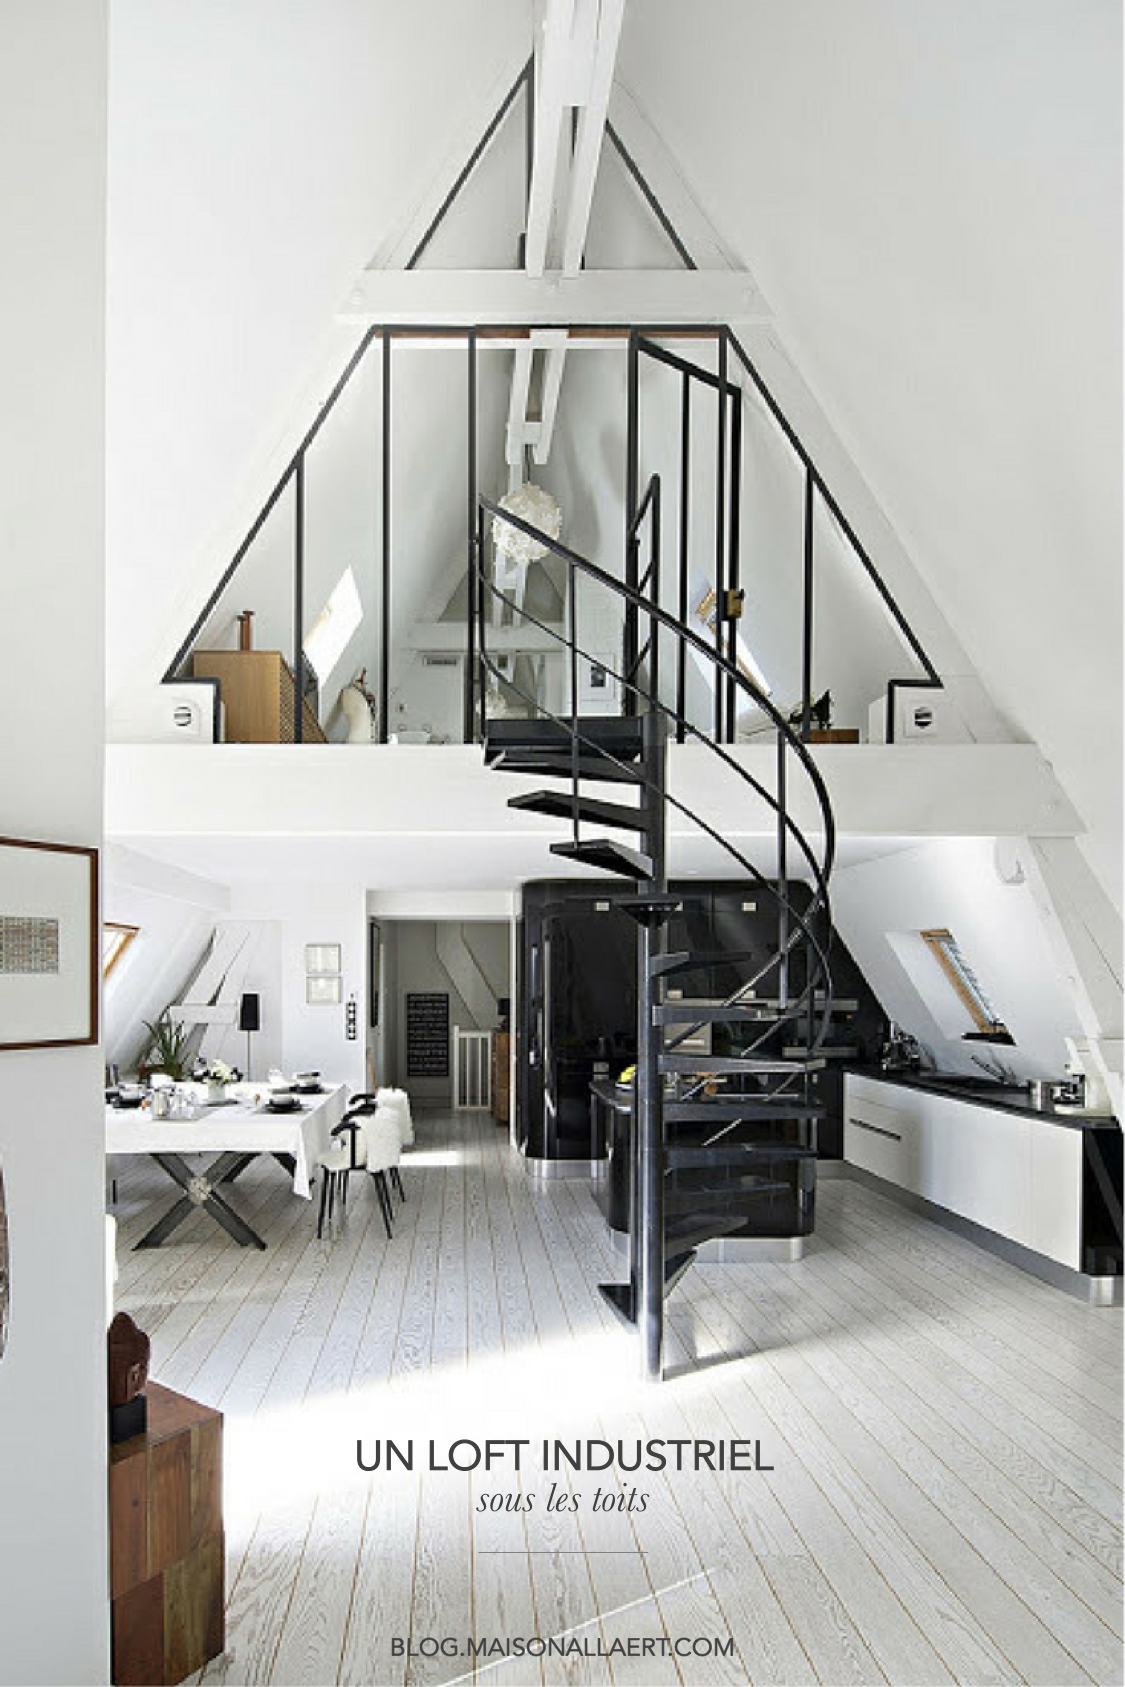 un appartement sous les toits reconverti en loft industriel et design maison allaert blog. Black Bedroom Furniture Sets. Home Design Ideas